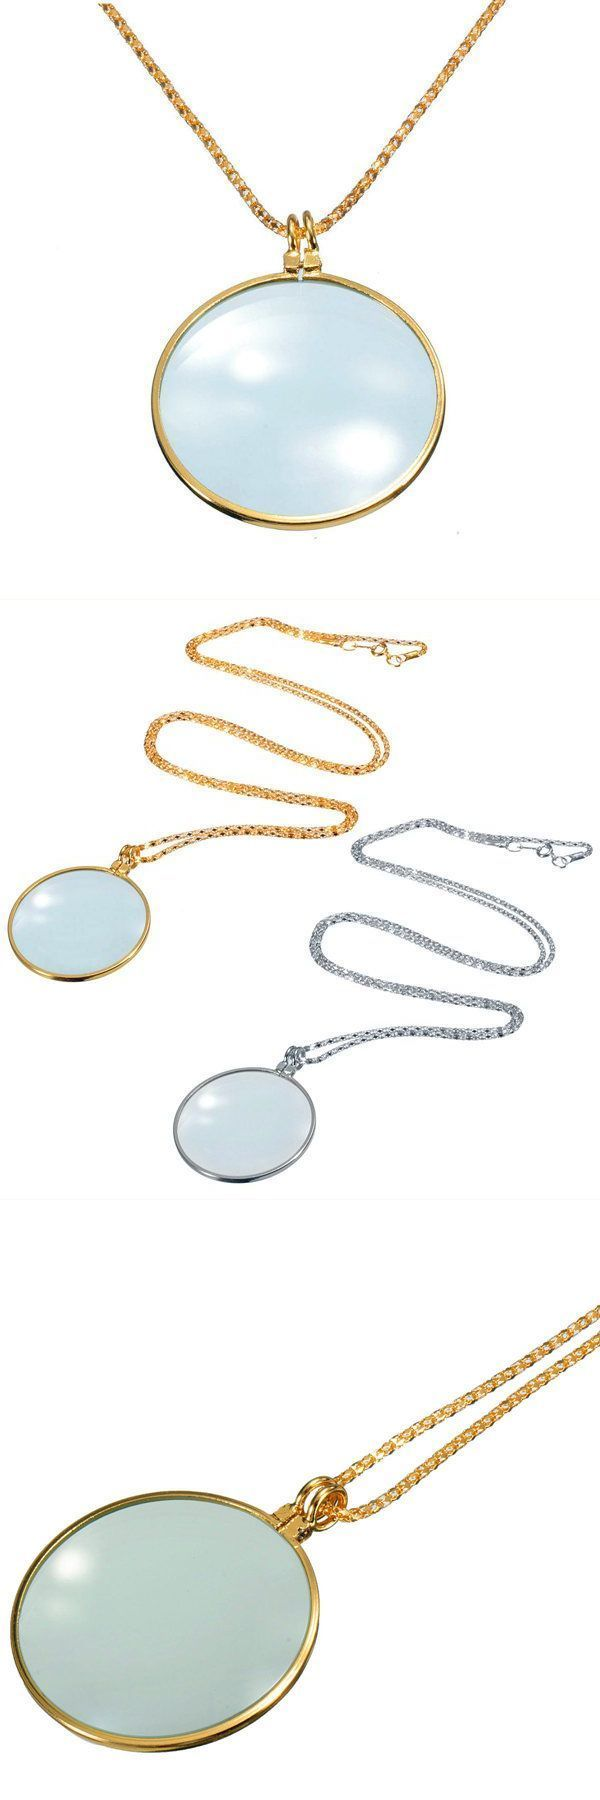 Necklace pendants engraved 5x silver gold magnifier magnifying glass pendant necklace #cheap #necklace #pendants #in #india #necklace #pendants #tiffany #necklace #pendants #with #quotes #necklace #pendants #without #chain